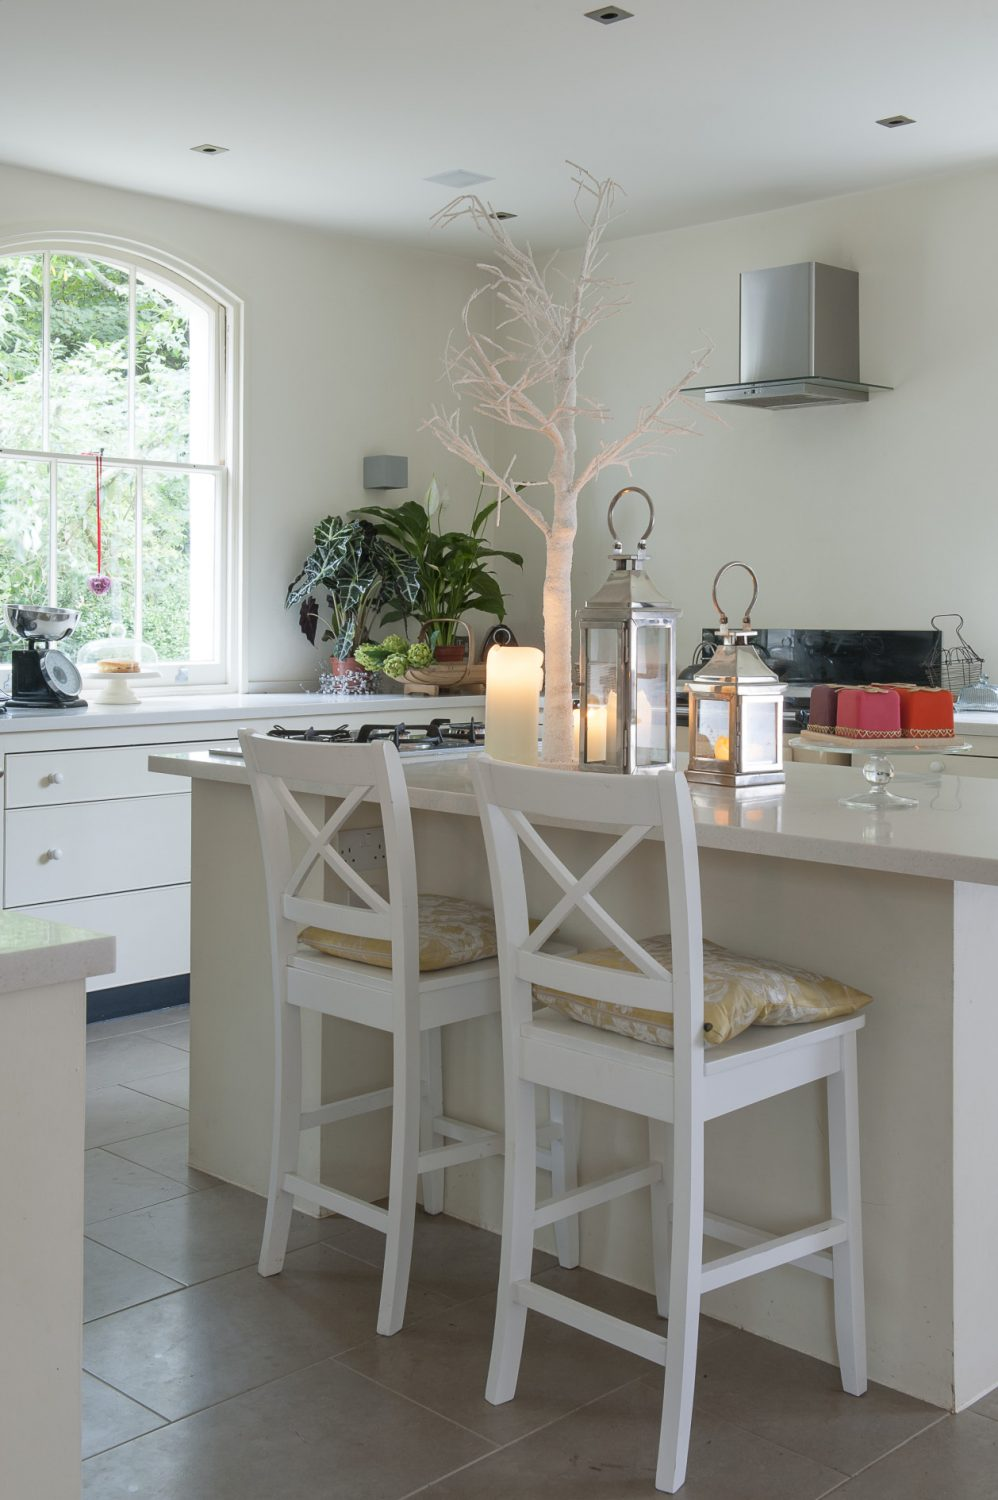 We put in the island unit, which is great when we're entertaining because I can carry on with my preparations and cook on the hob here while I chat and then we can all eat at the dining table.